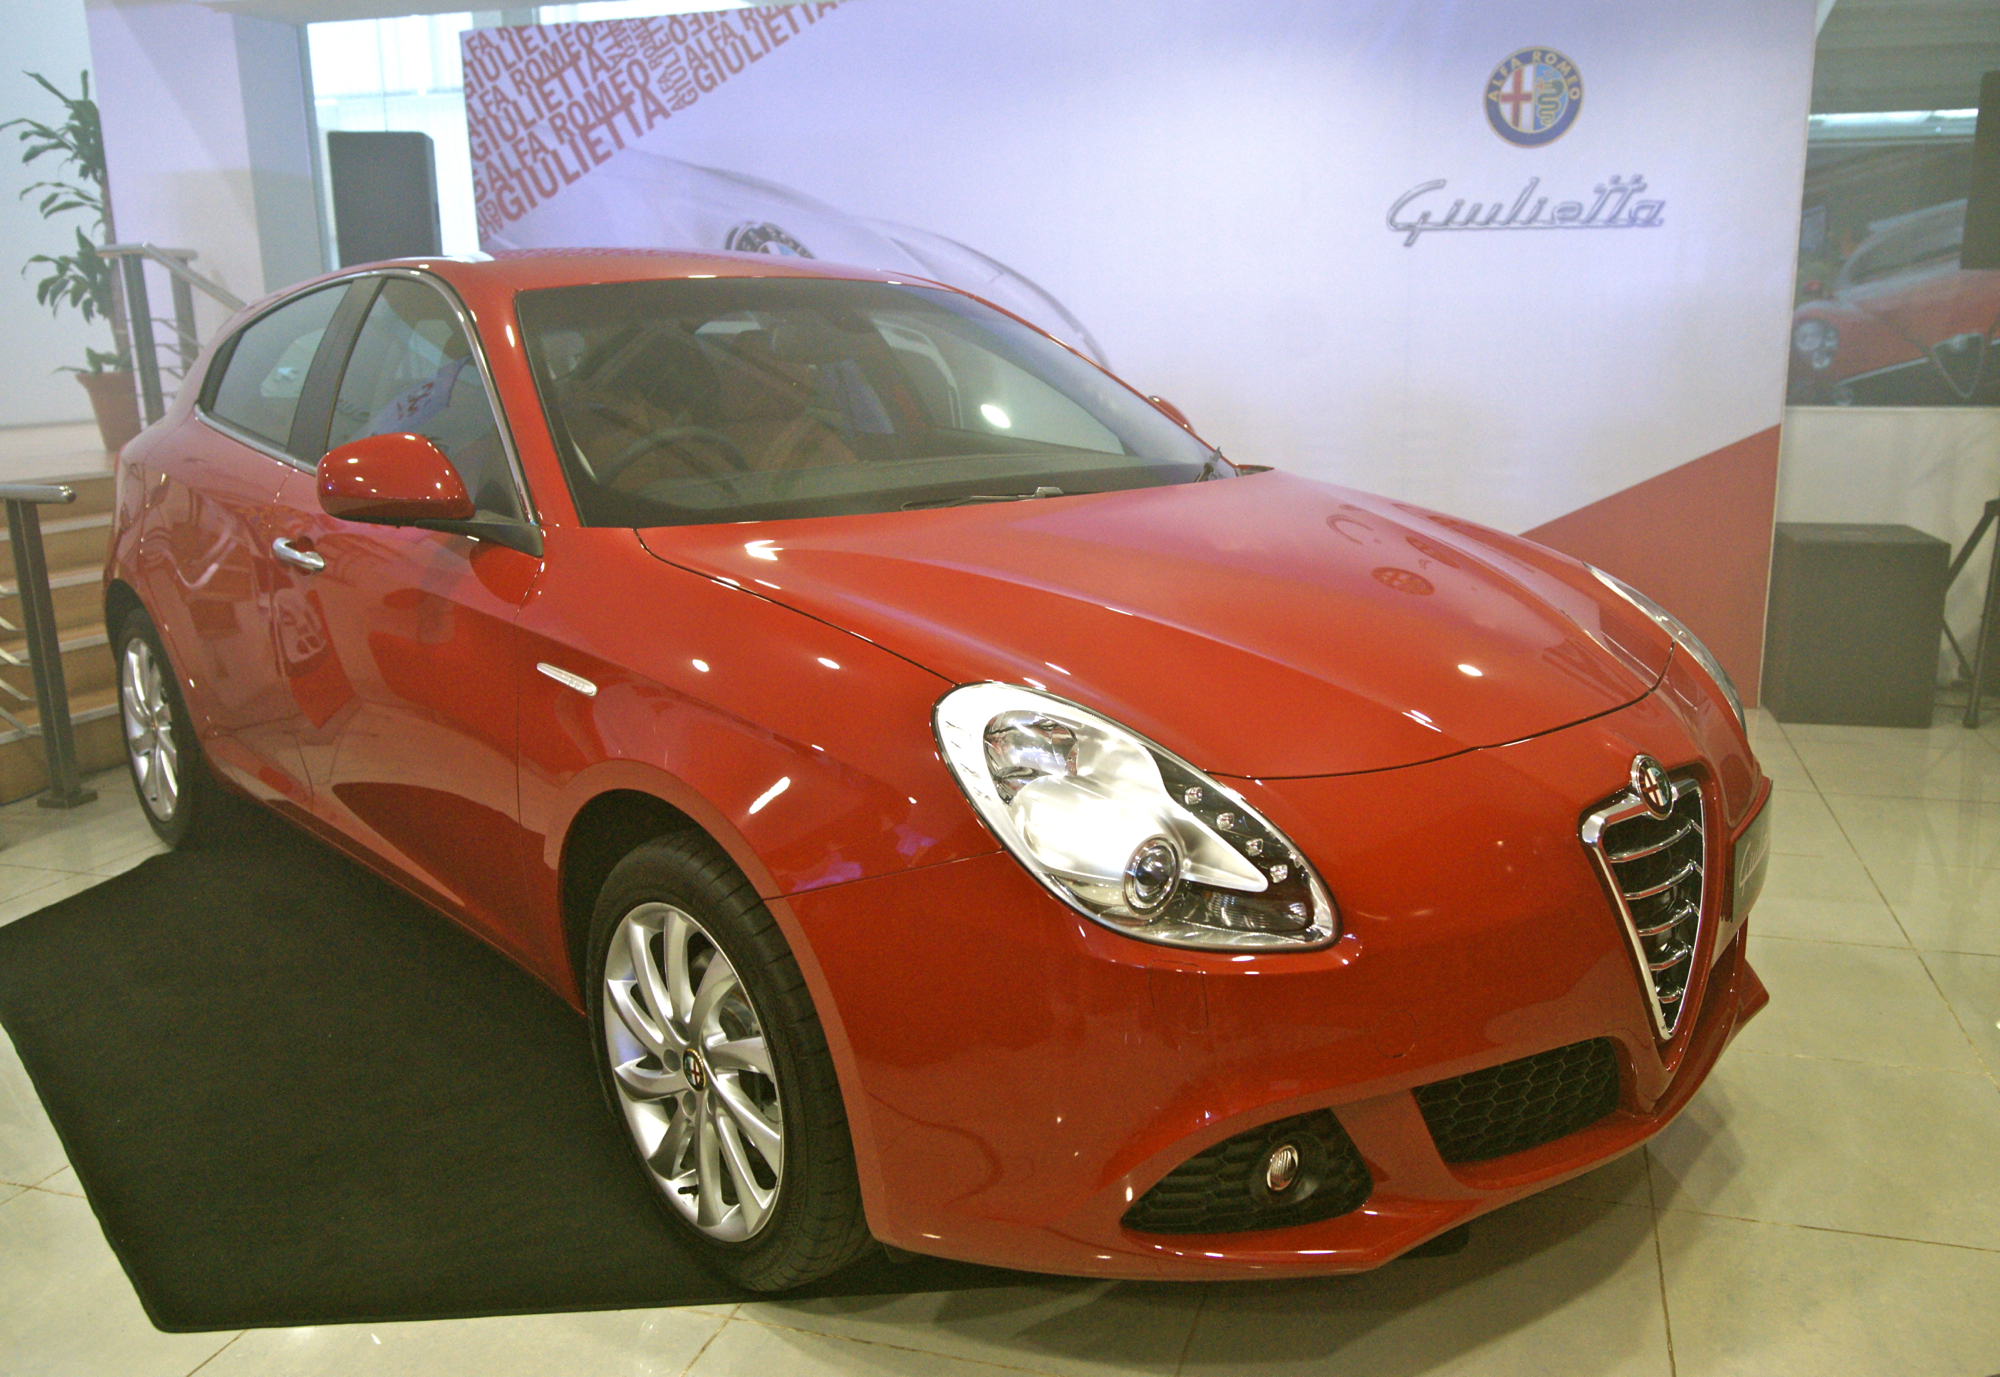 alfa romeo giulietta 1 4 tb multiair 170 hp rm178 888 image 105854. Black Bedroom Furniture Sets. Home Design Ideas